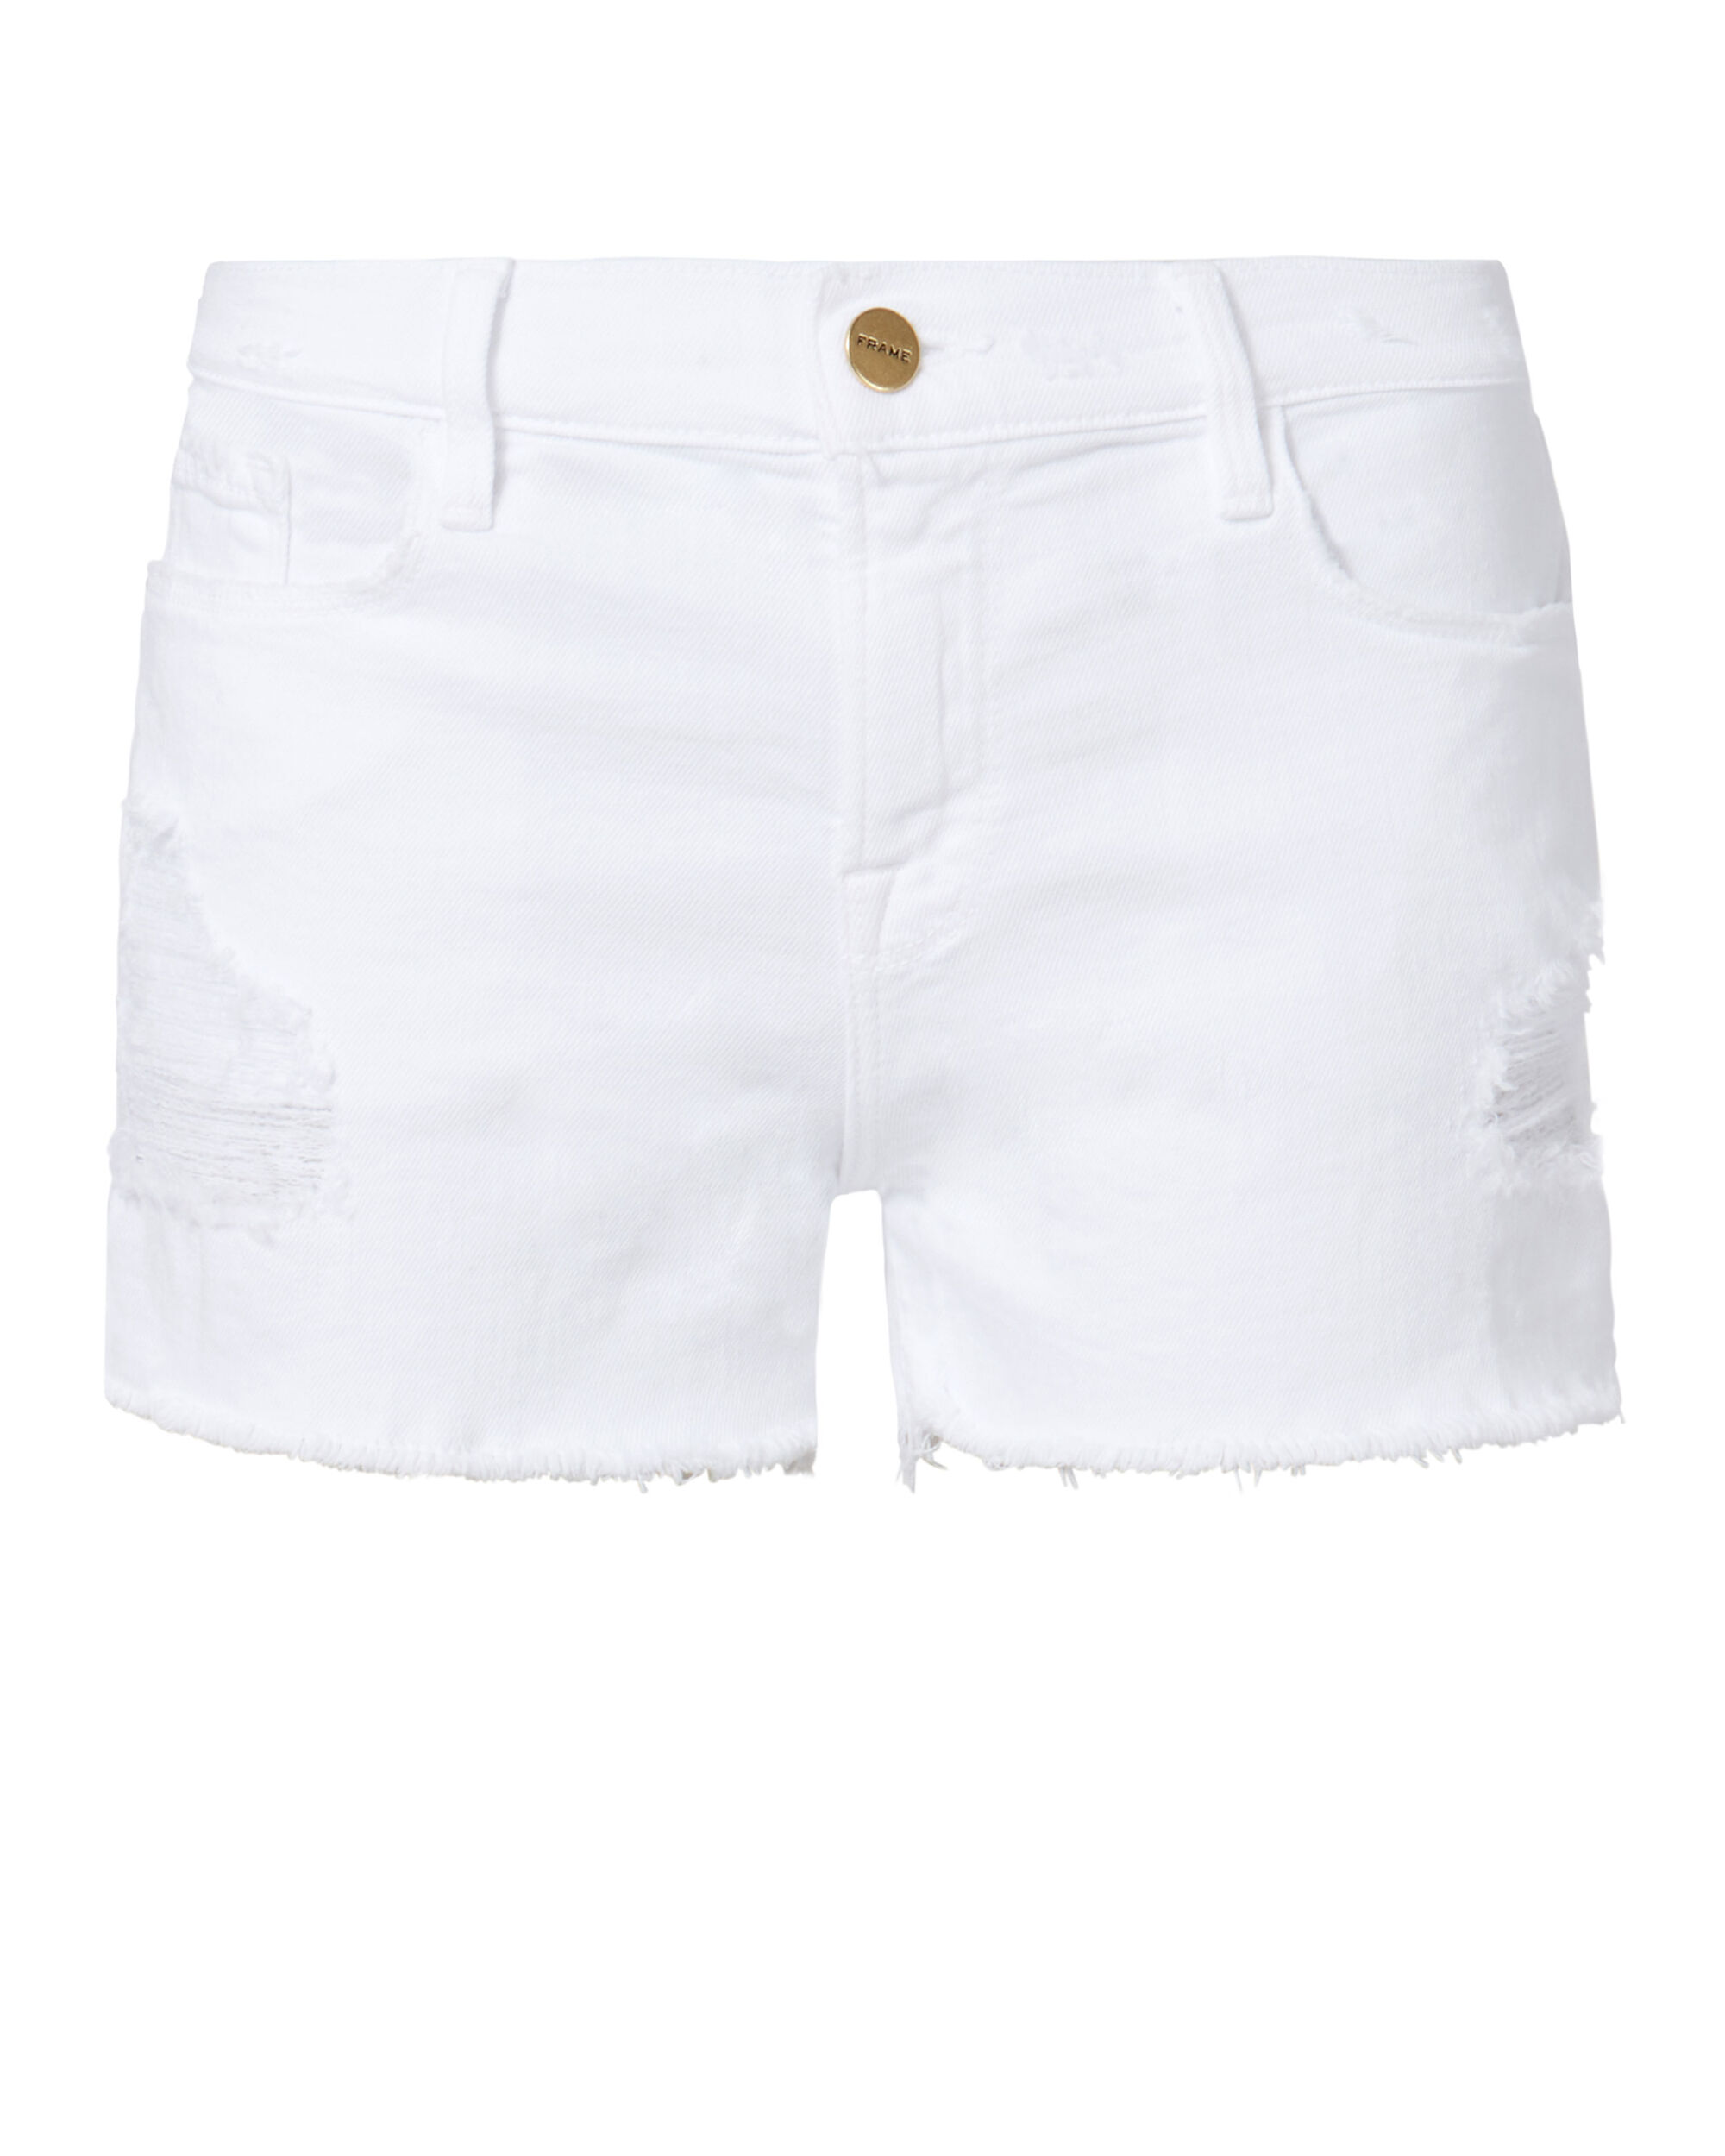 Le Cutoff White Shorts, WHITE, hi-res